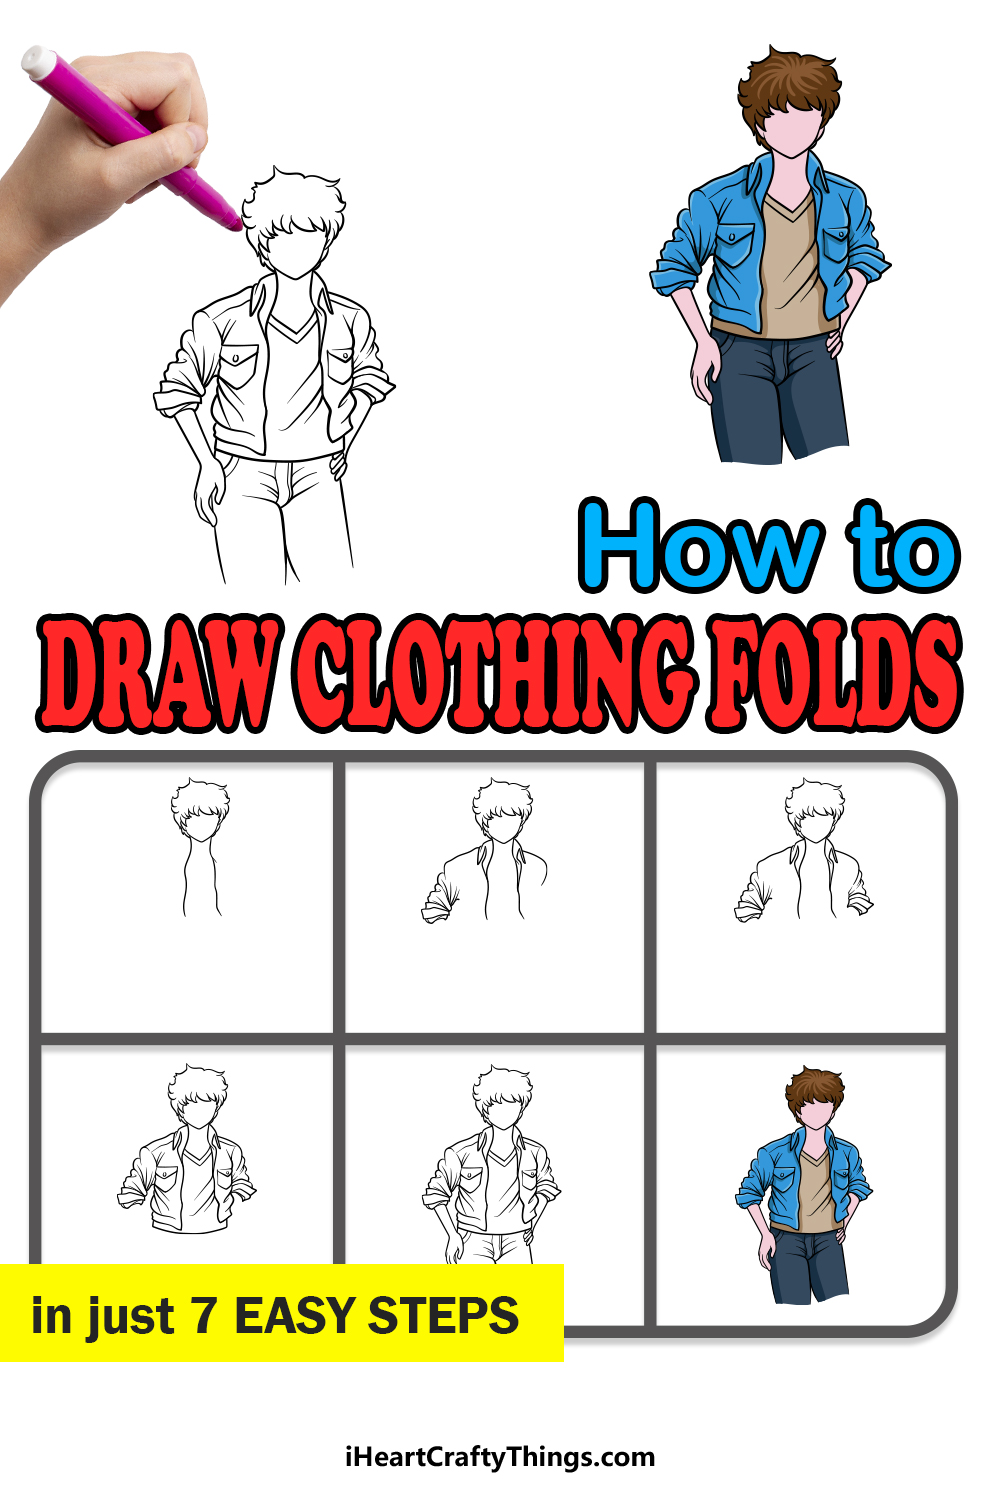 how to draw clothing folds in 7 easy steps